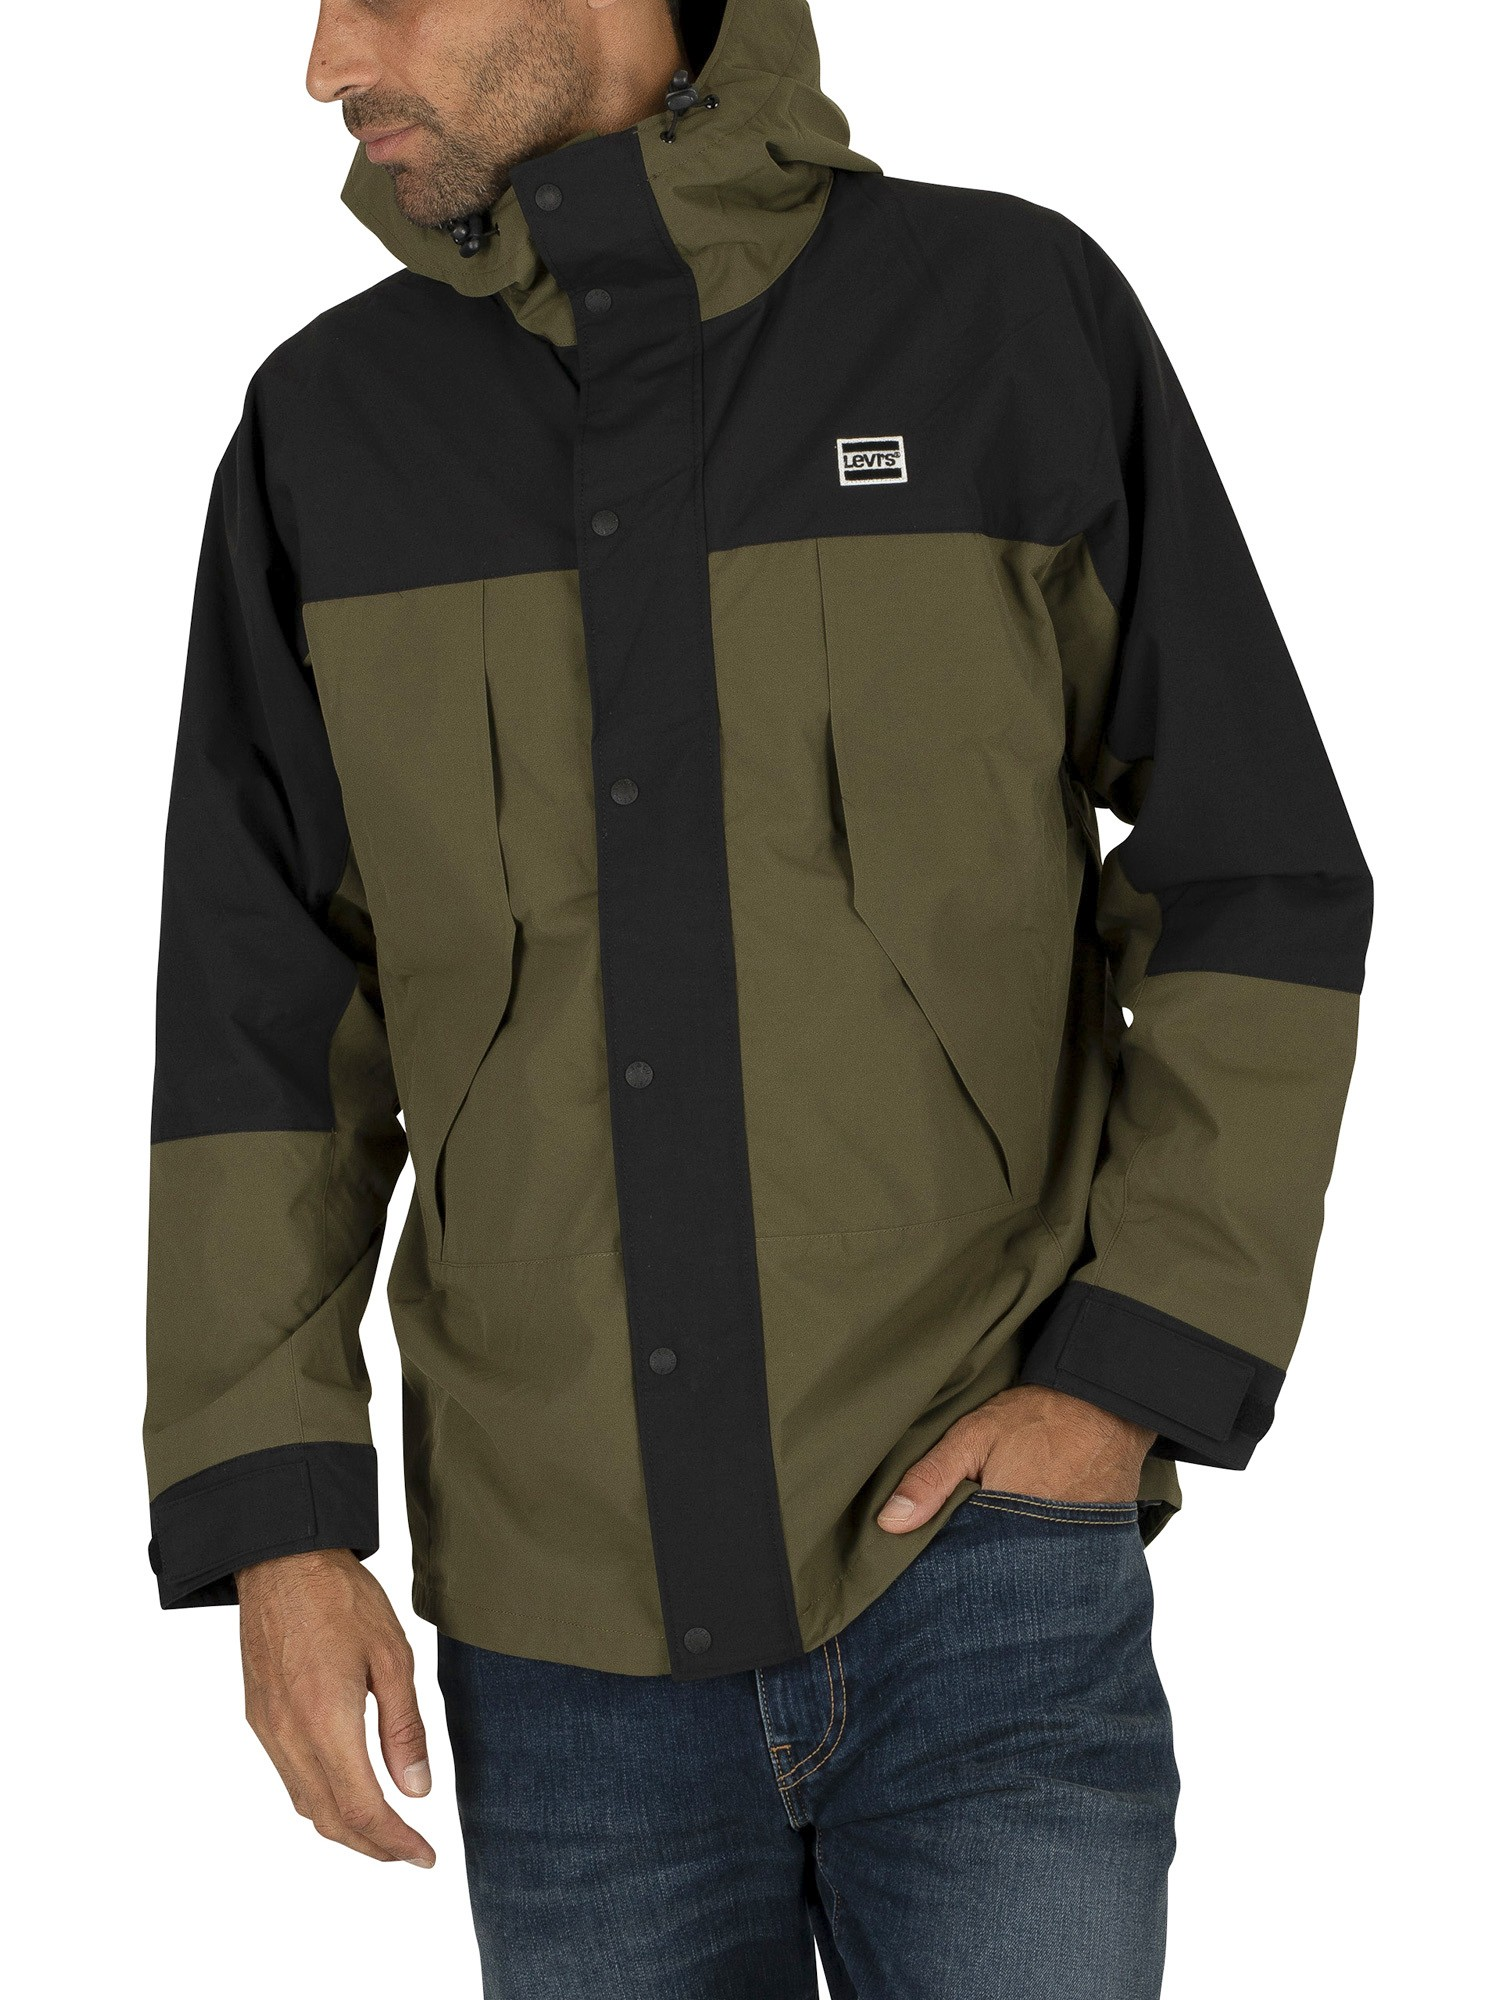 Levi's Lightweight Sport Parka Jacket - Olive Night